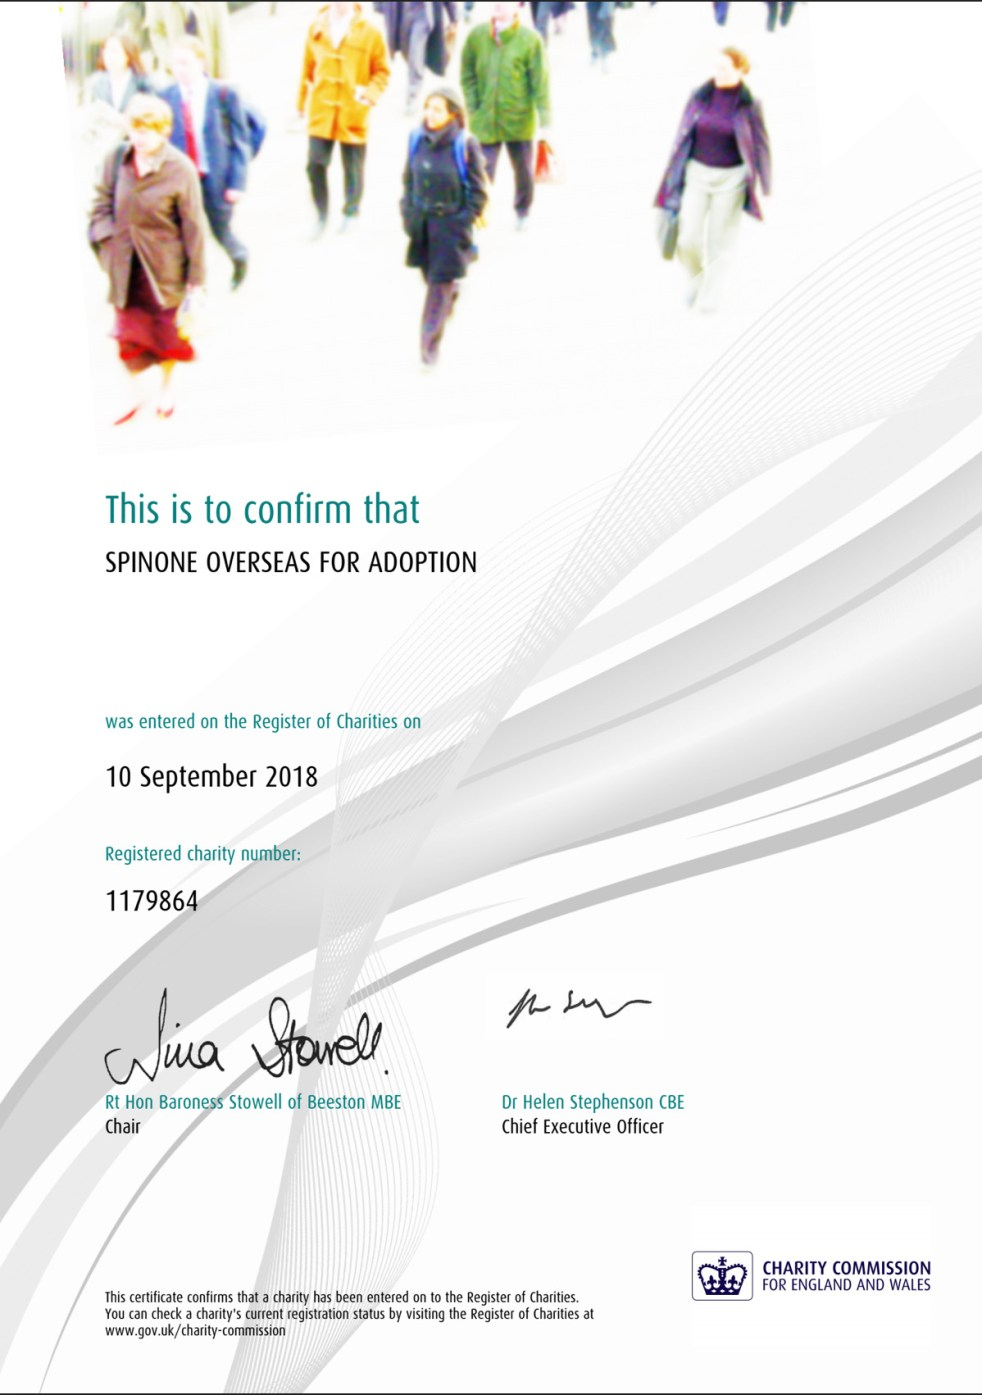 Our new charity certificate